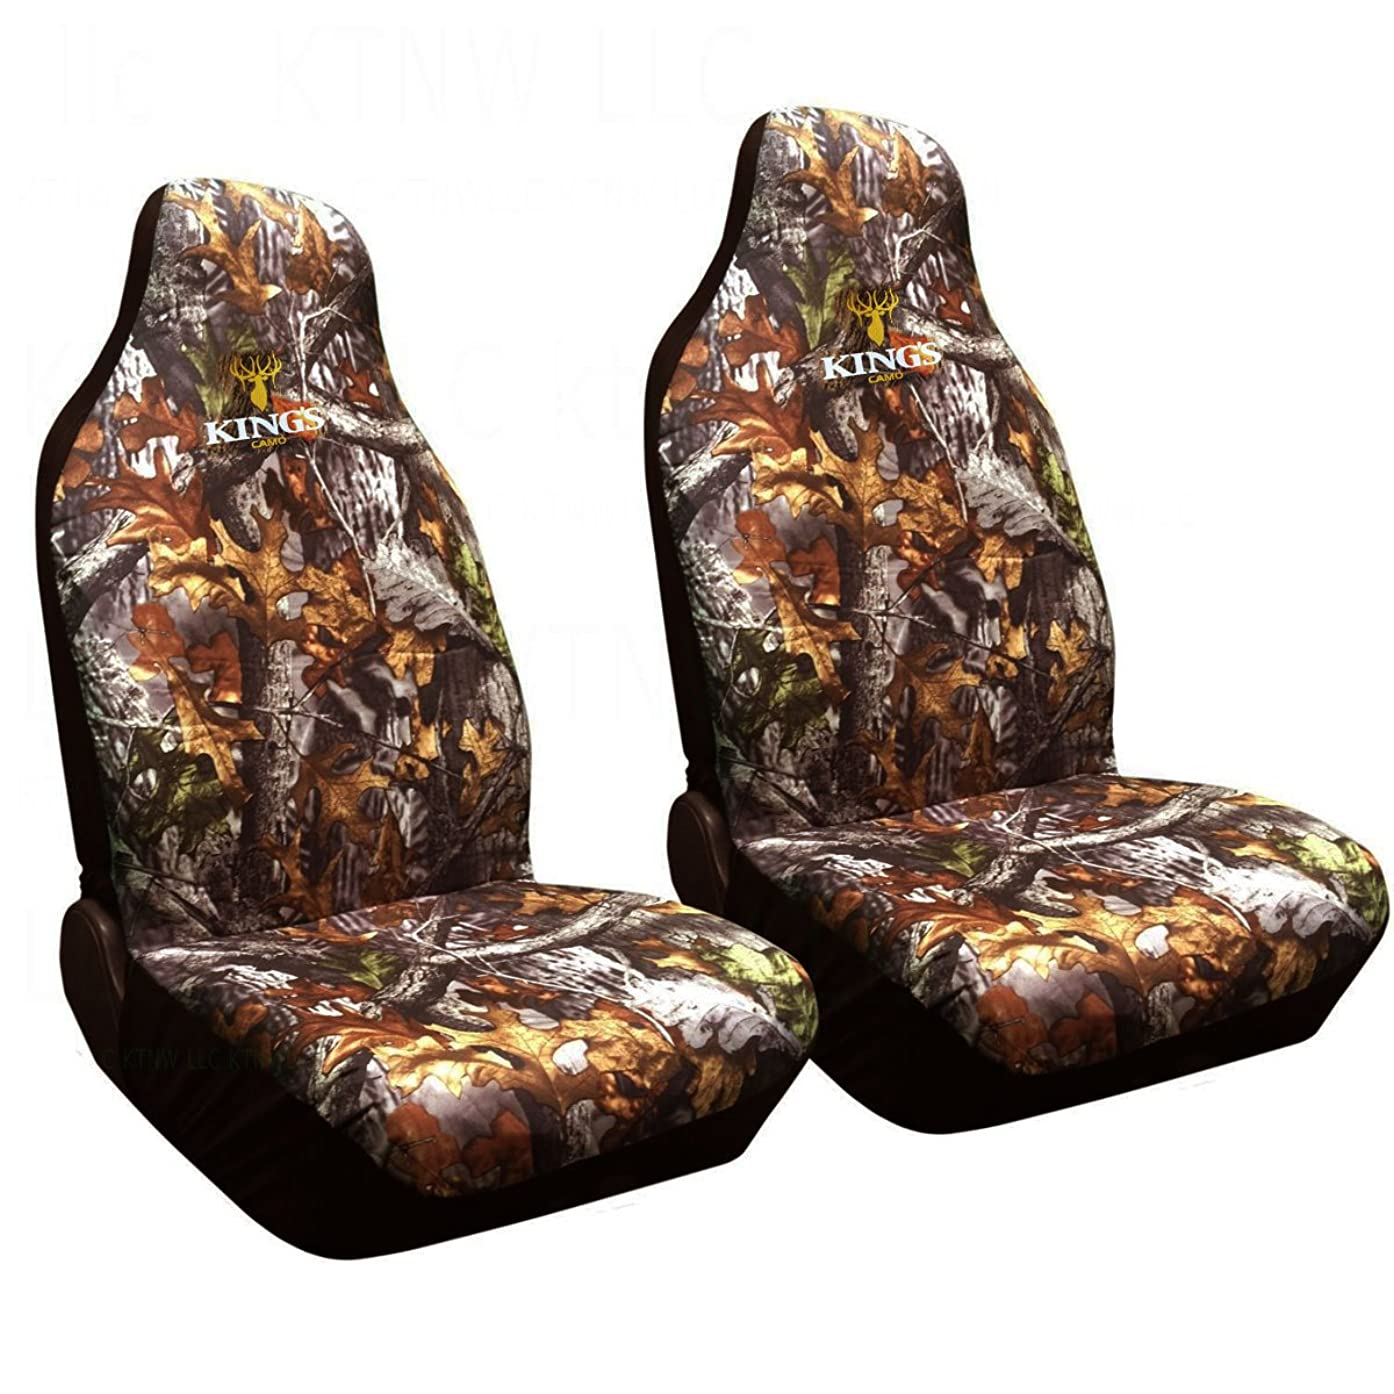 Two Officially Licensed Kings Camo Universal Fit Highback Seat Covers - Woodland Shadow